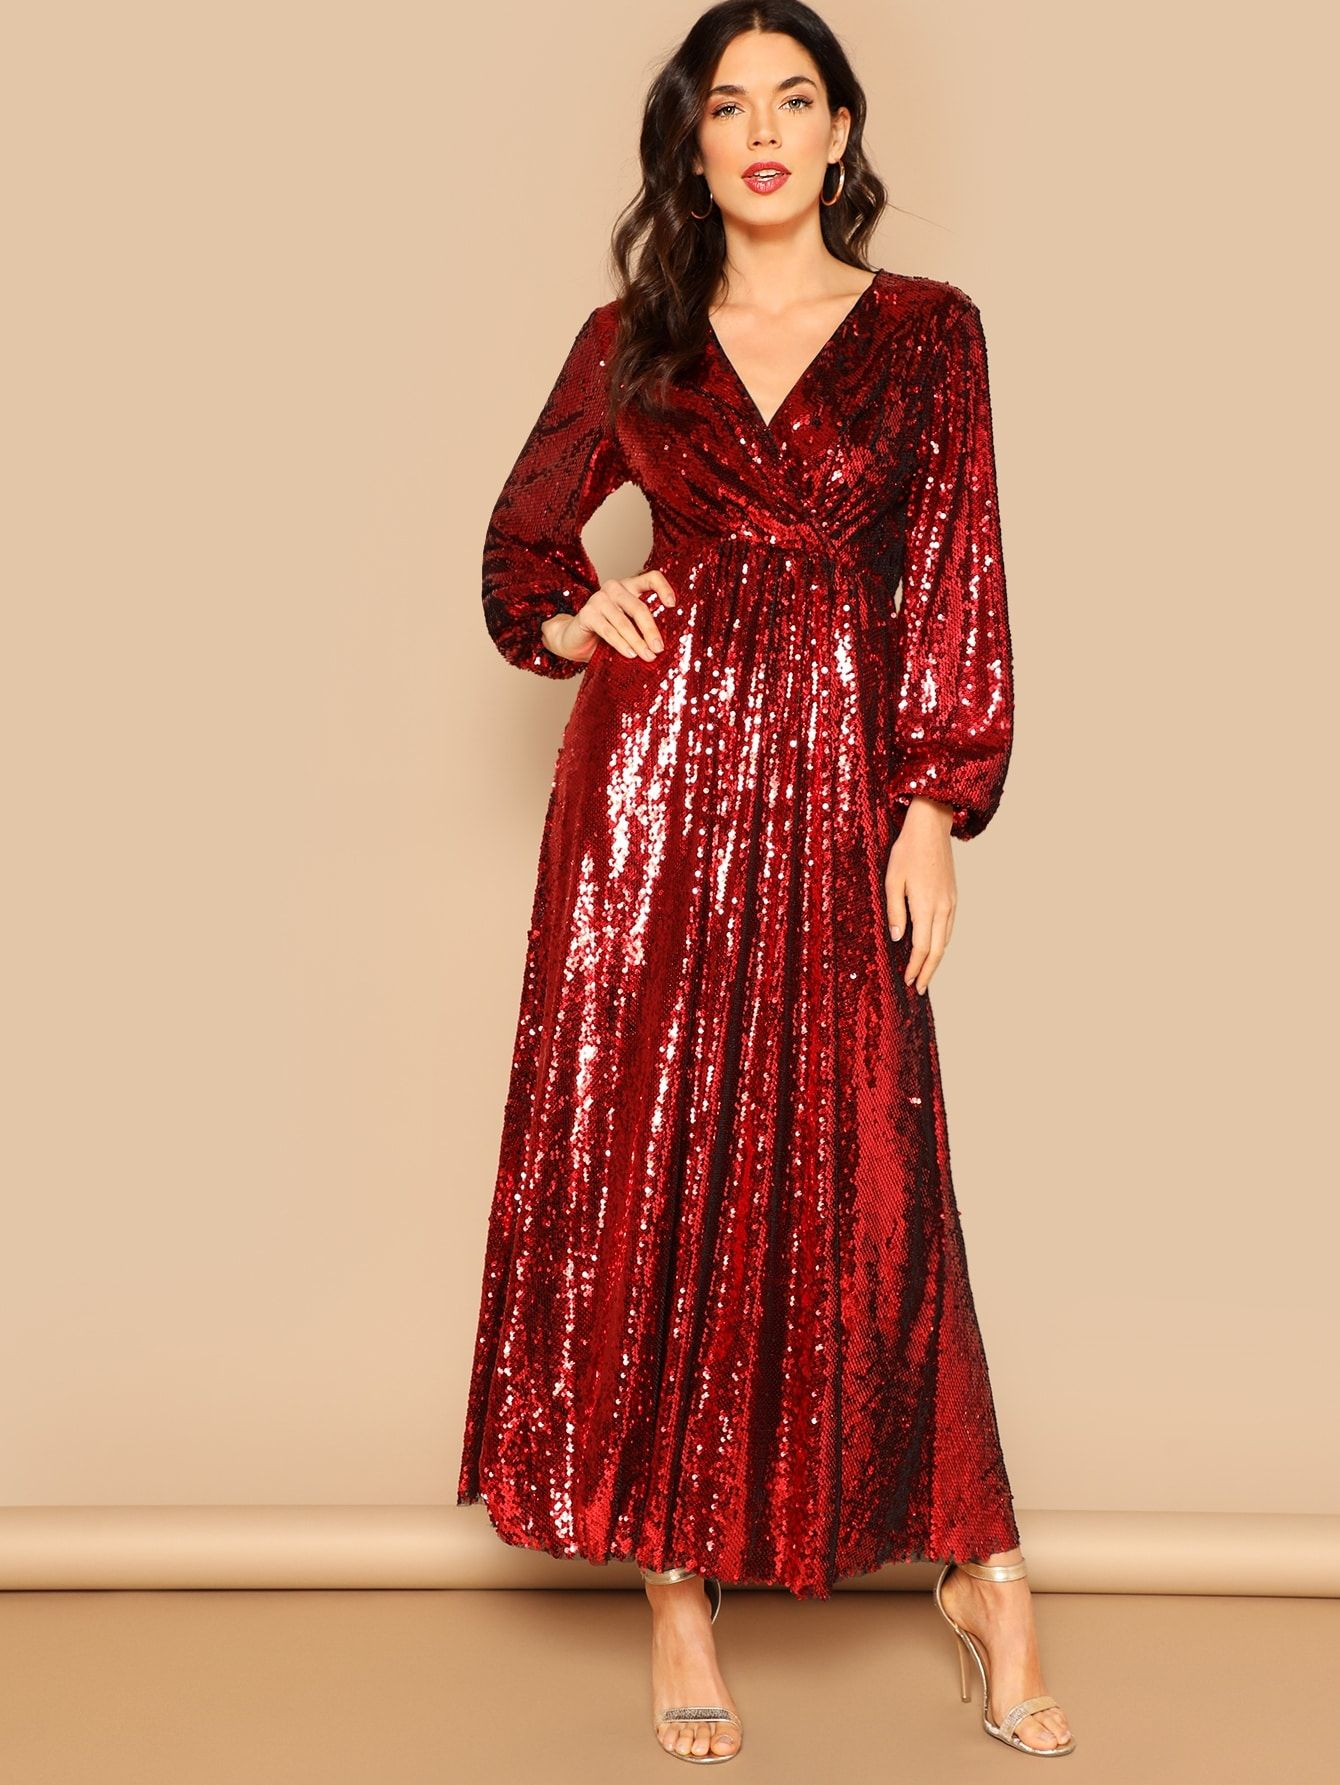 aa26e0139bbb Party A Line Wrap Plain Fit and Flare Deep V Neck Long Sleeve High Waist  Red Maxi Length Wrap Front Lantern Sleeve Sequin Dress